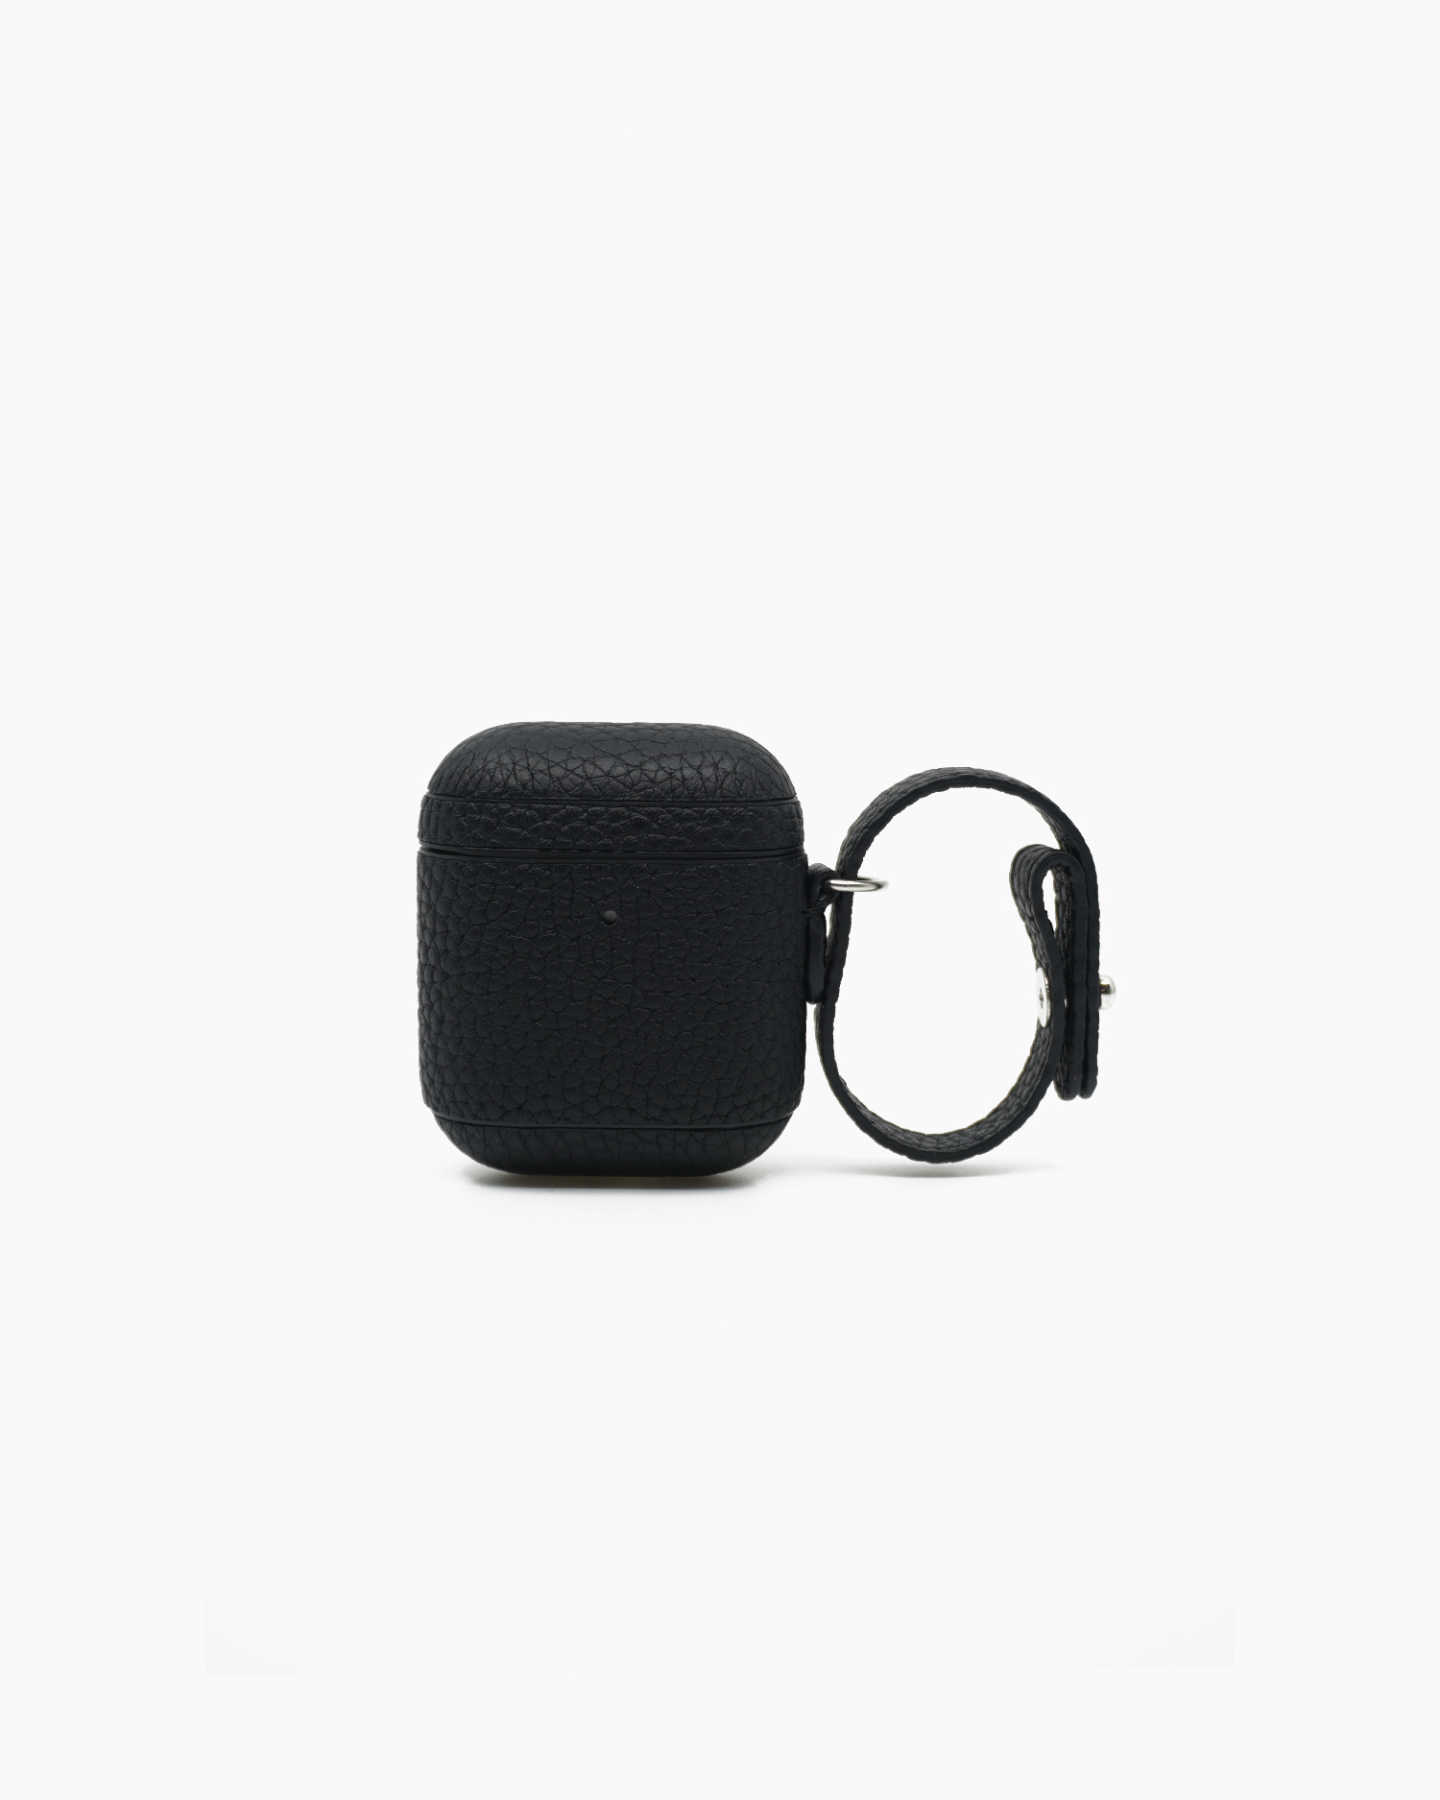 Premium Pebbled Leather AirPod Case - Black - 0